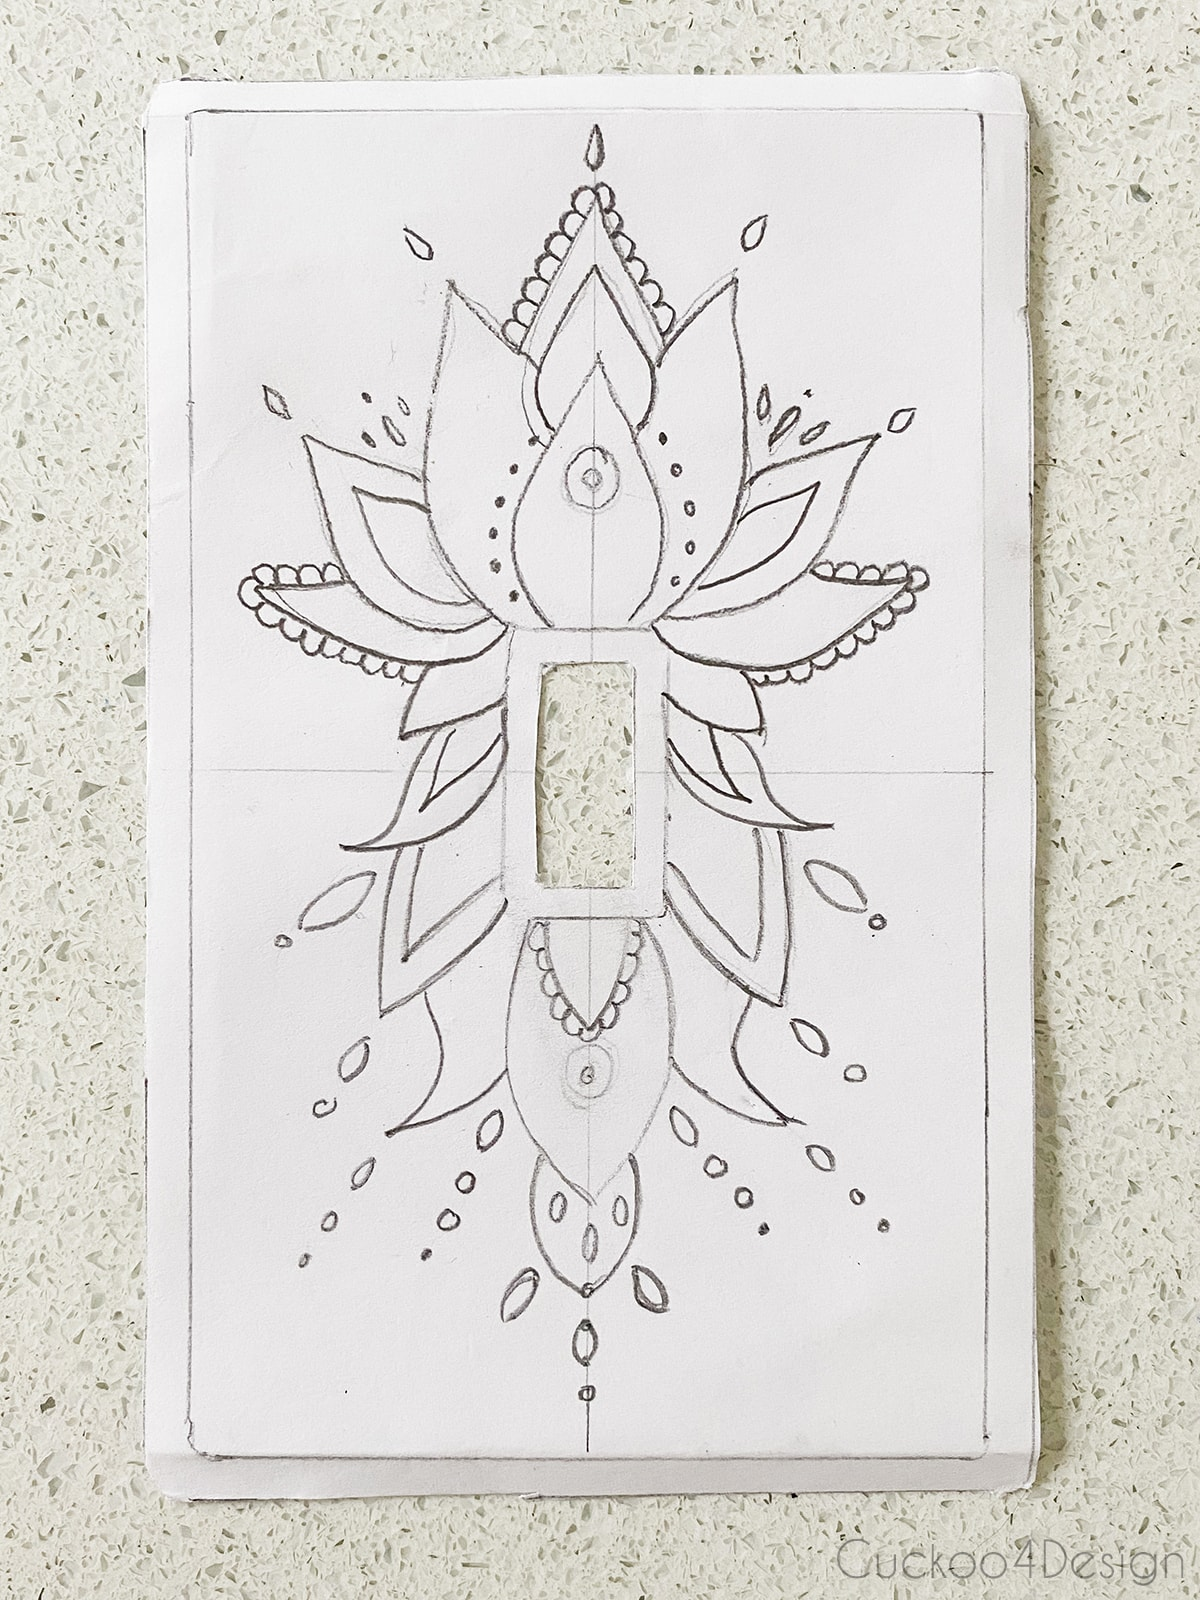 handdrawn mandala pattern for light switch cover